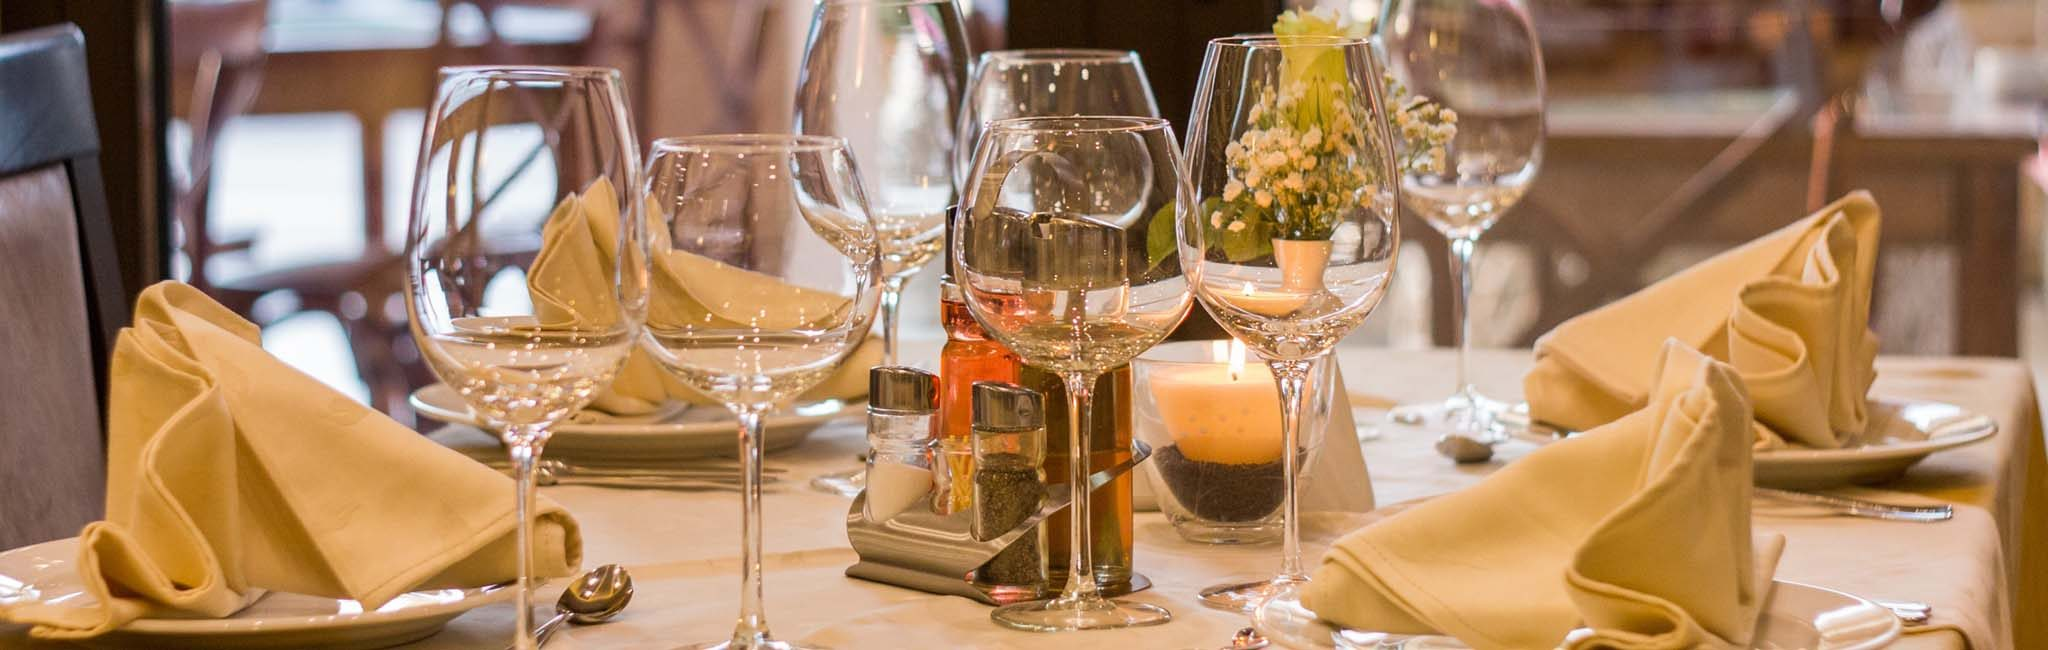 Wining and Dining